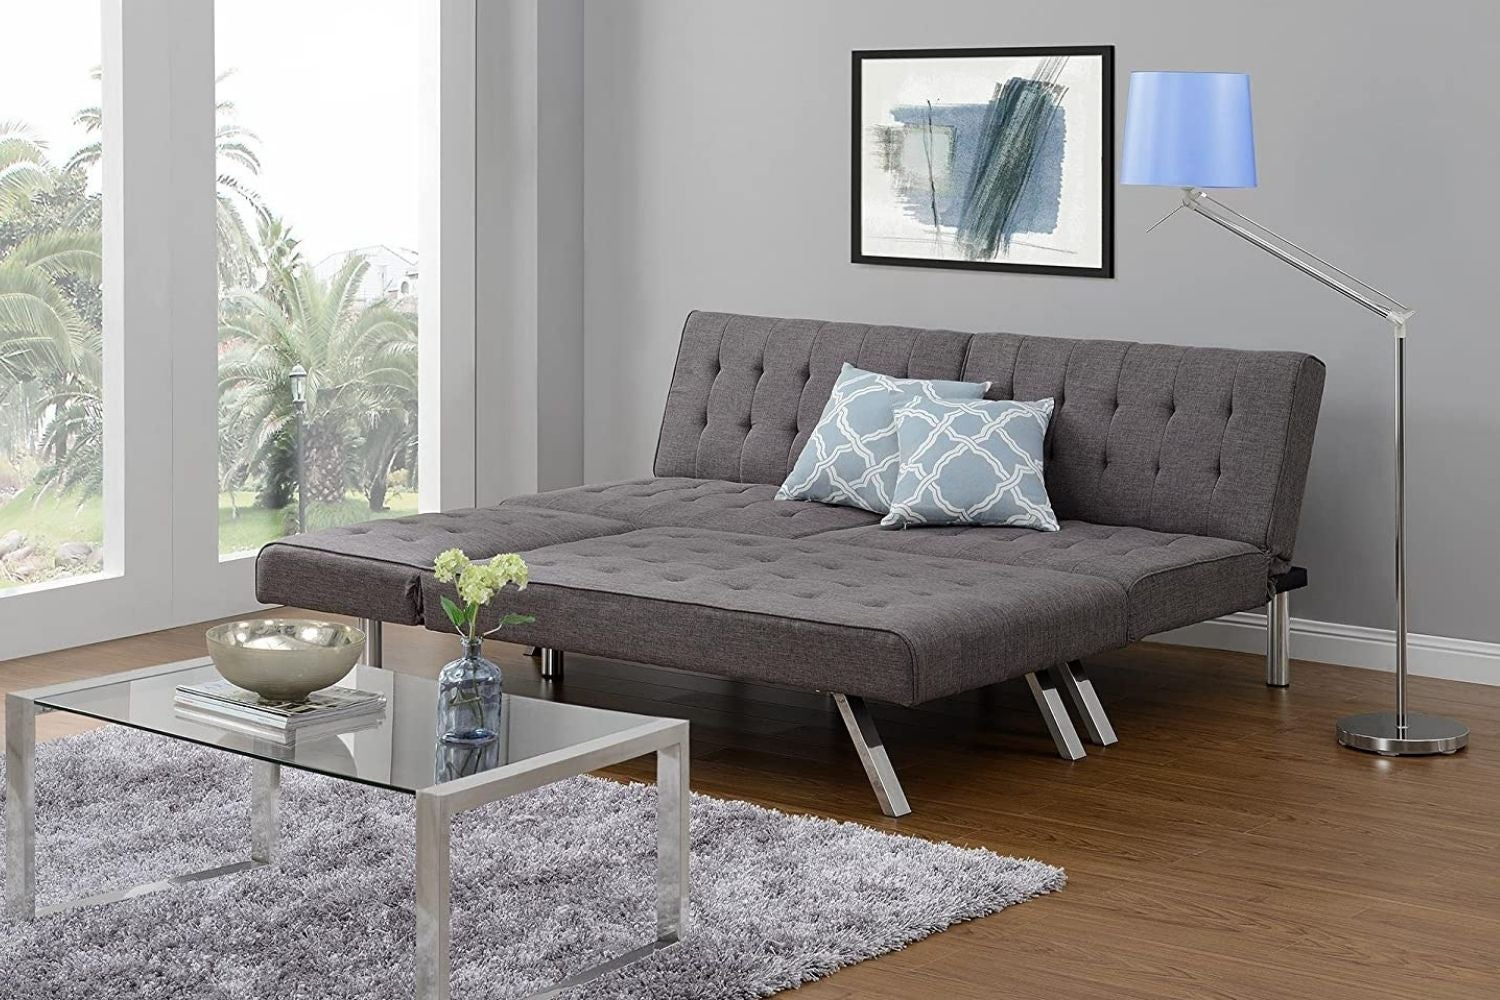 Best Futon Options For Overnight Guests